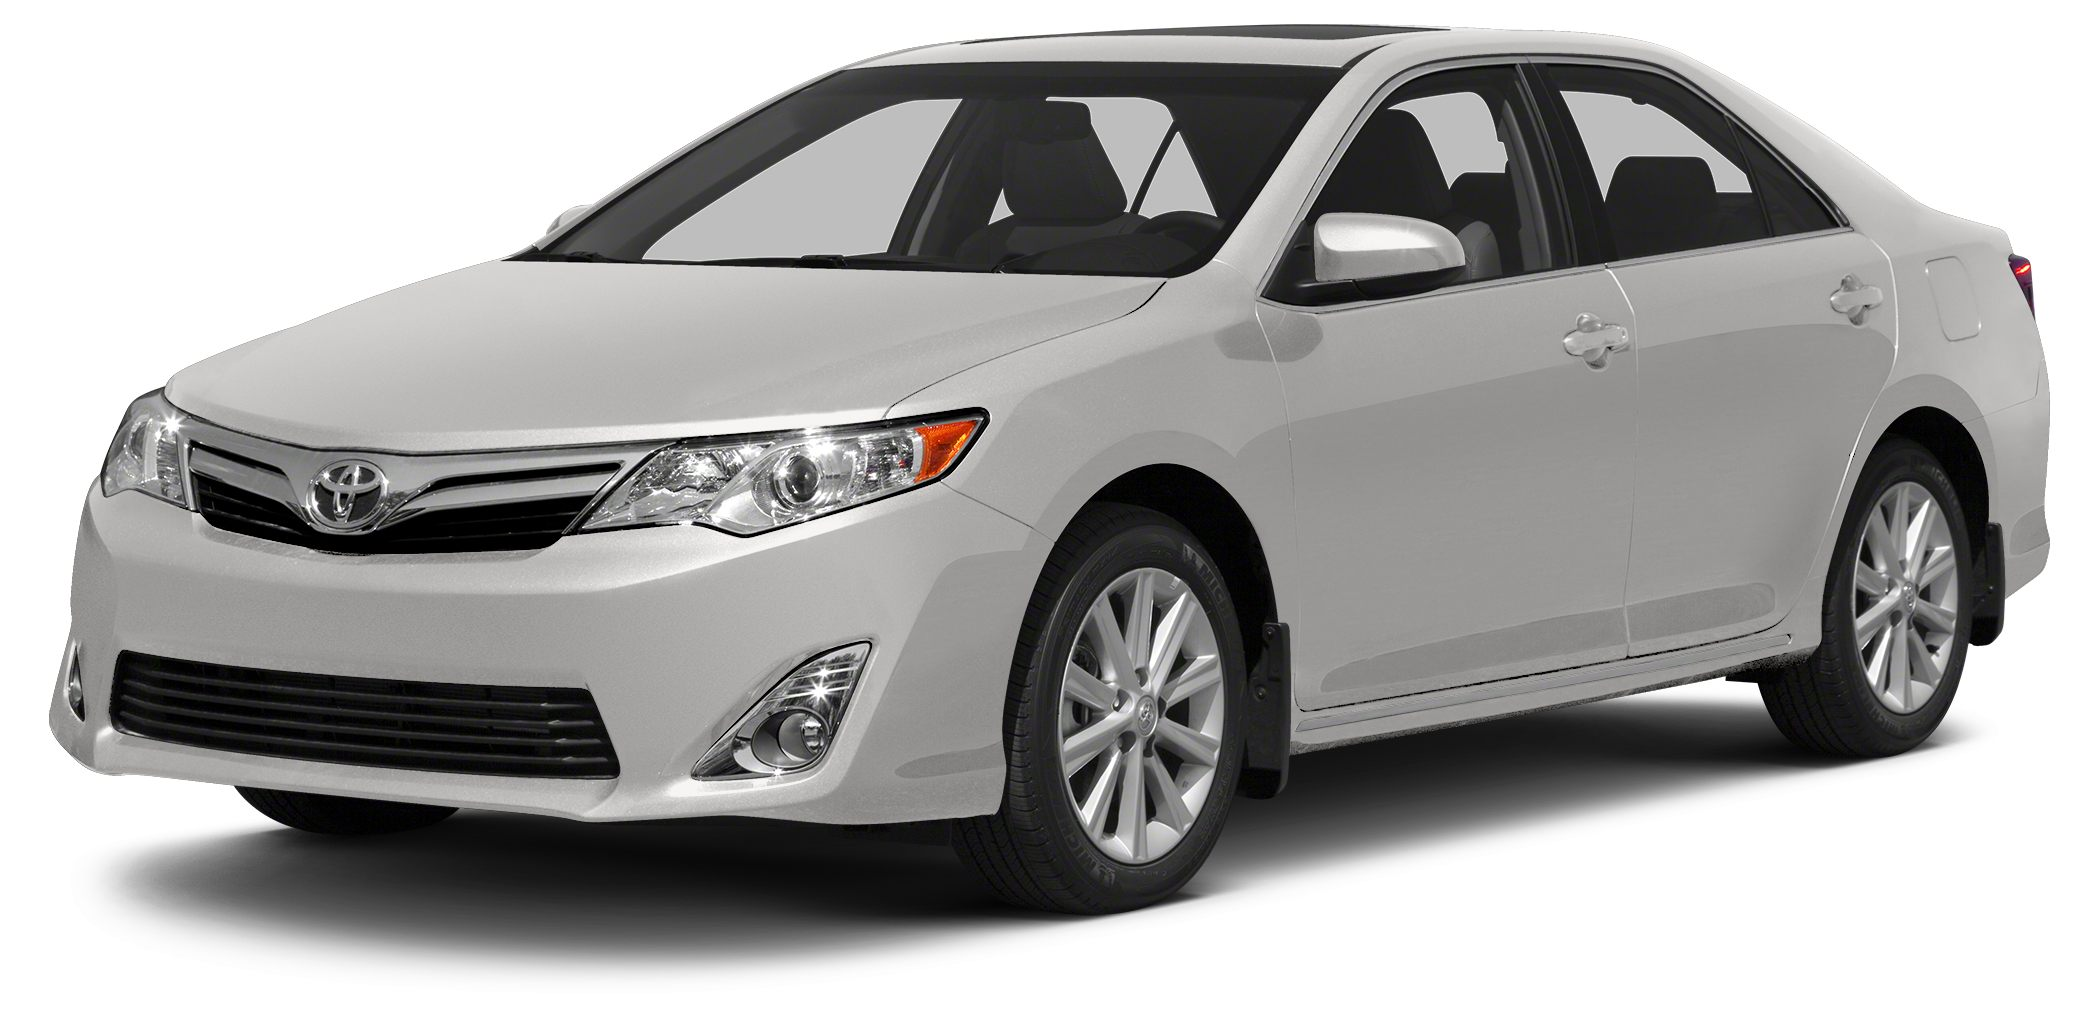 2014 Toyota Camry L SUPER WHITE exterior and IVORY interior L trim CARFAX 1-Owner GREAT MILES 1